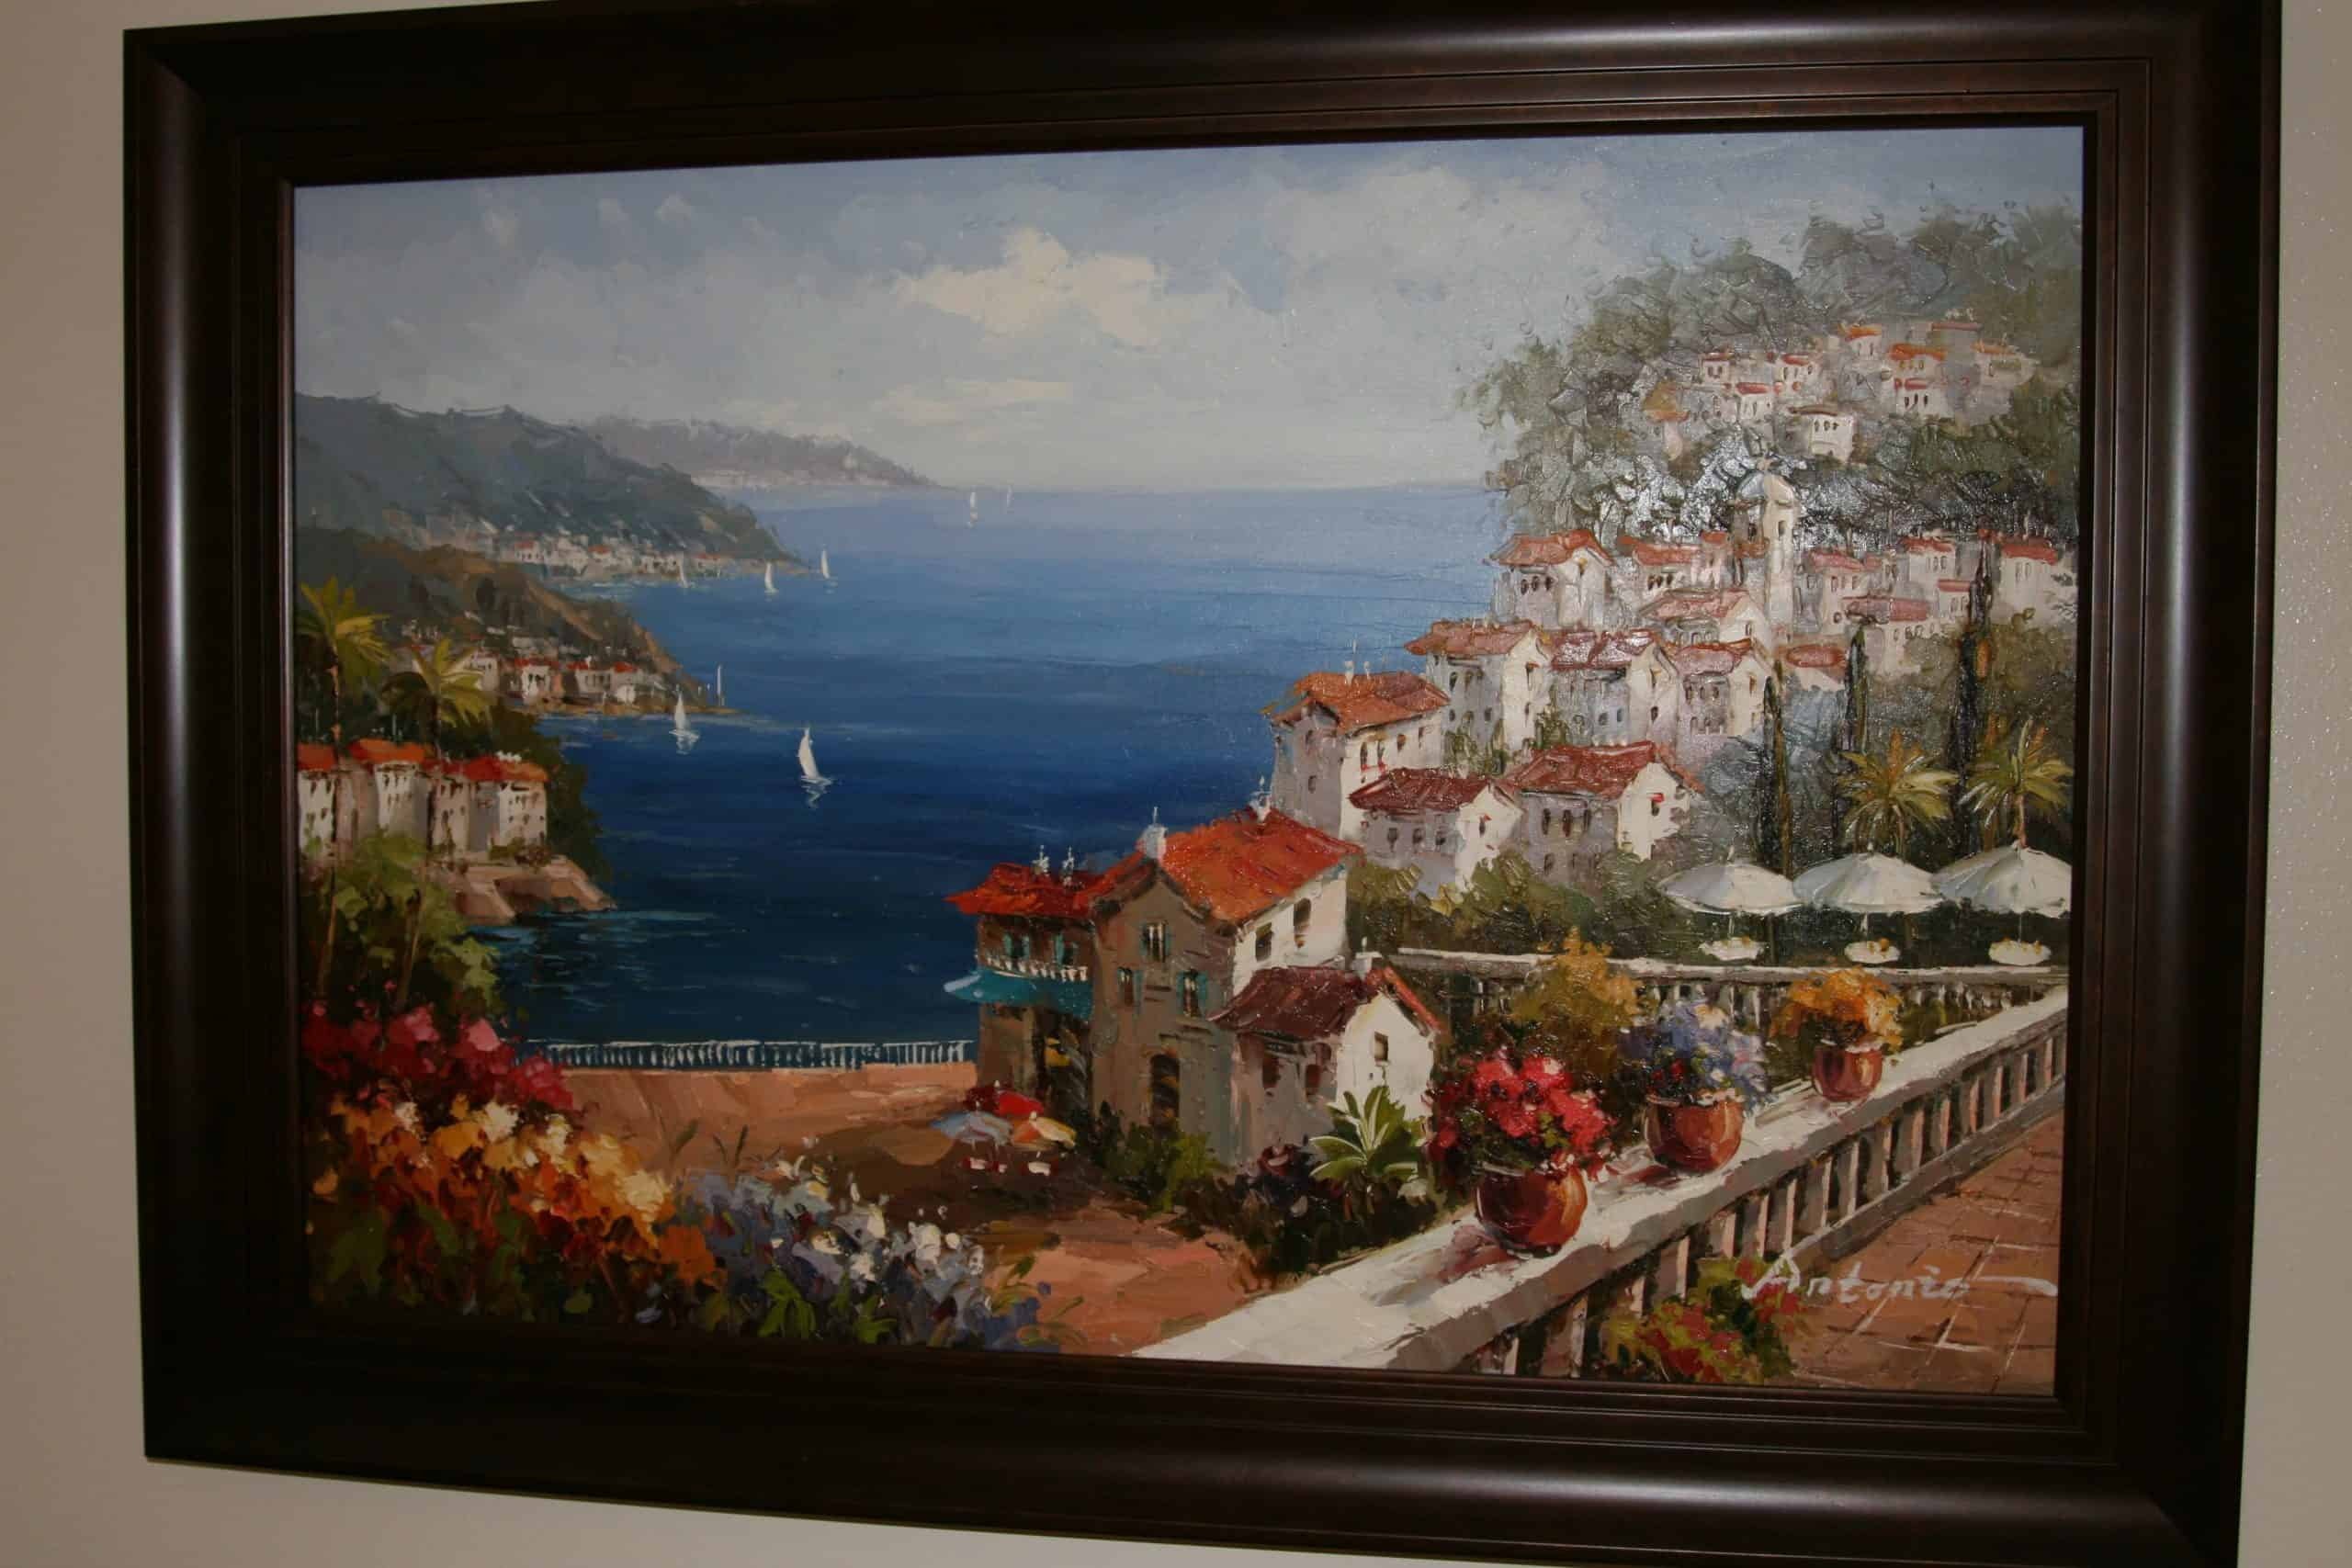 Costa Del Sol Antonio Oil Painting Framed Ace Rare